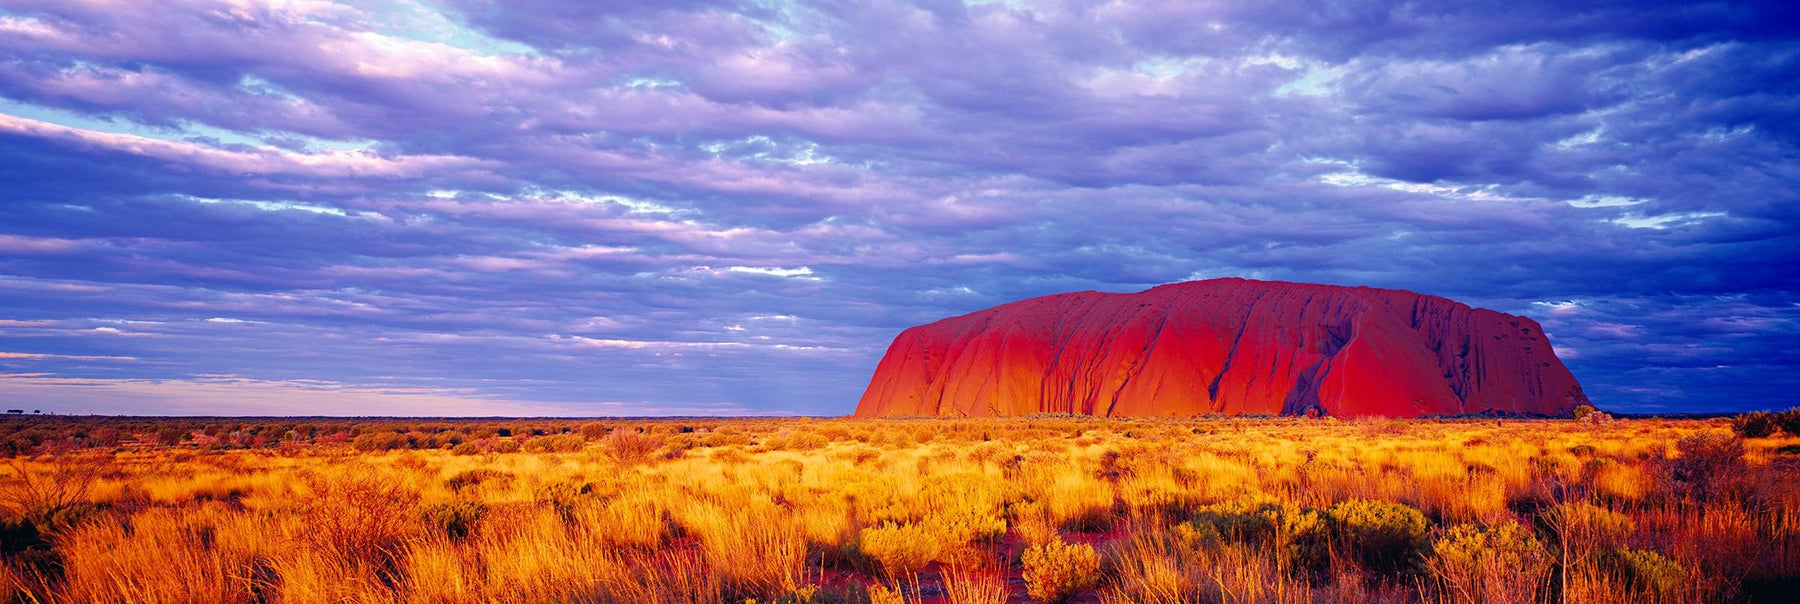 Uluru Rock a sandstone monolith in the Northern Territory desert of Australia at sunset